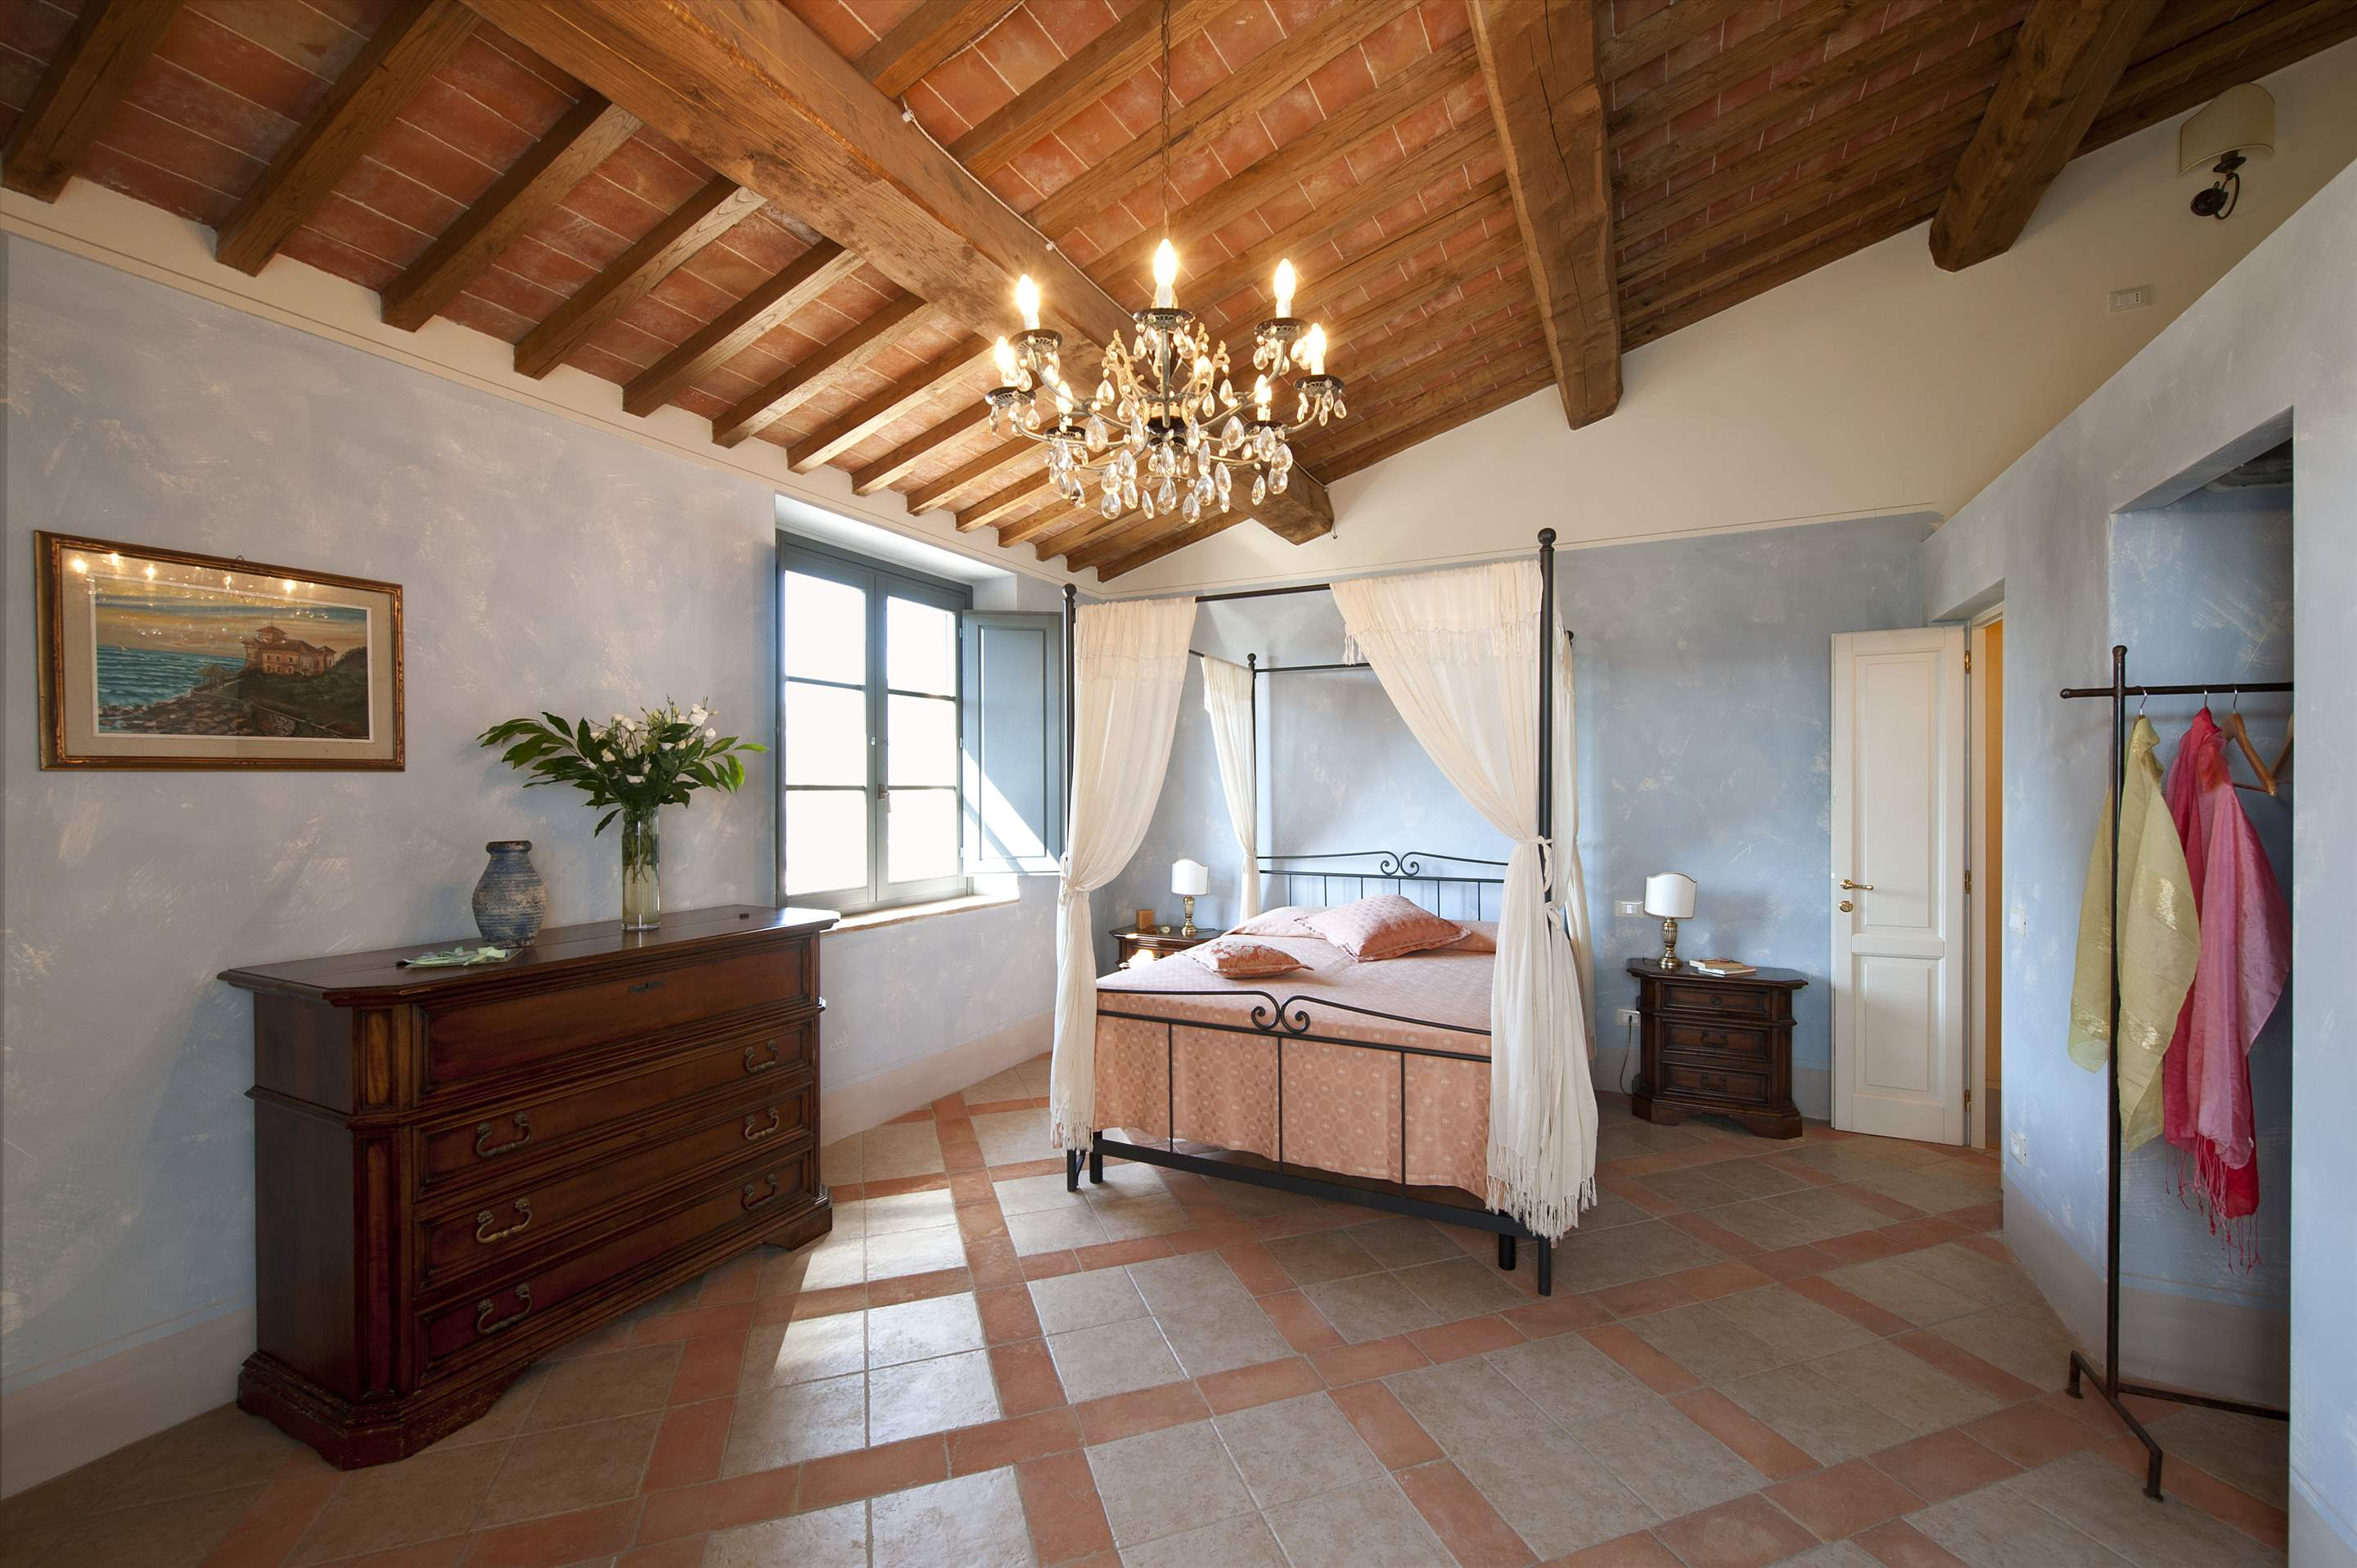 Podere Casacce, Ground Floor, 4 bedroom villa in Tuscany Coast, Tuscany Photo #23